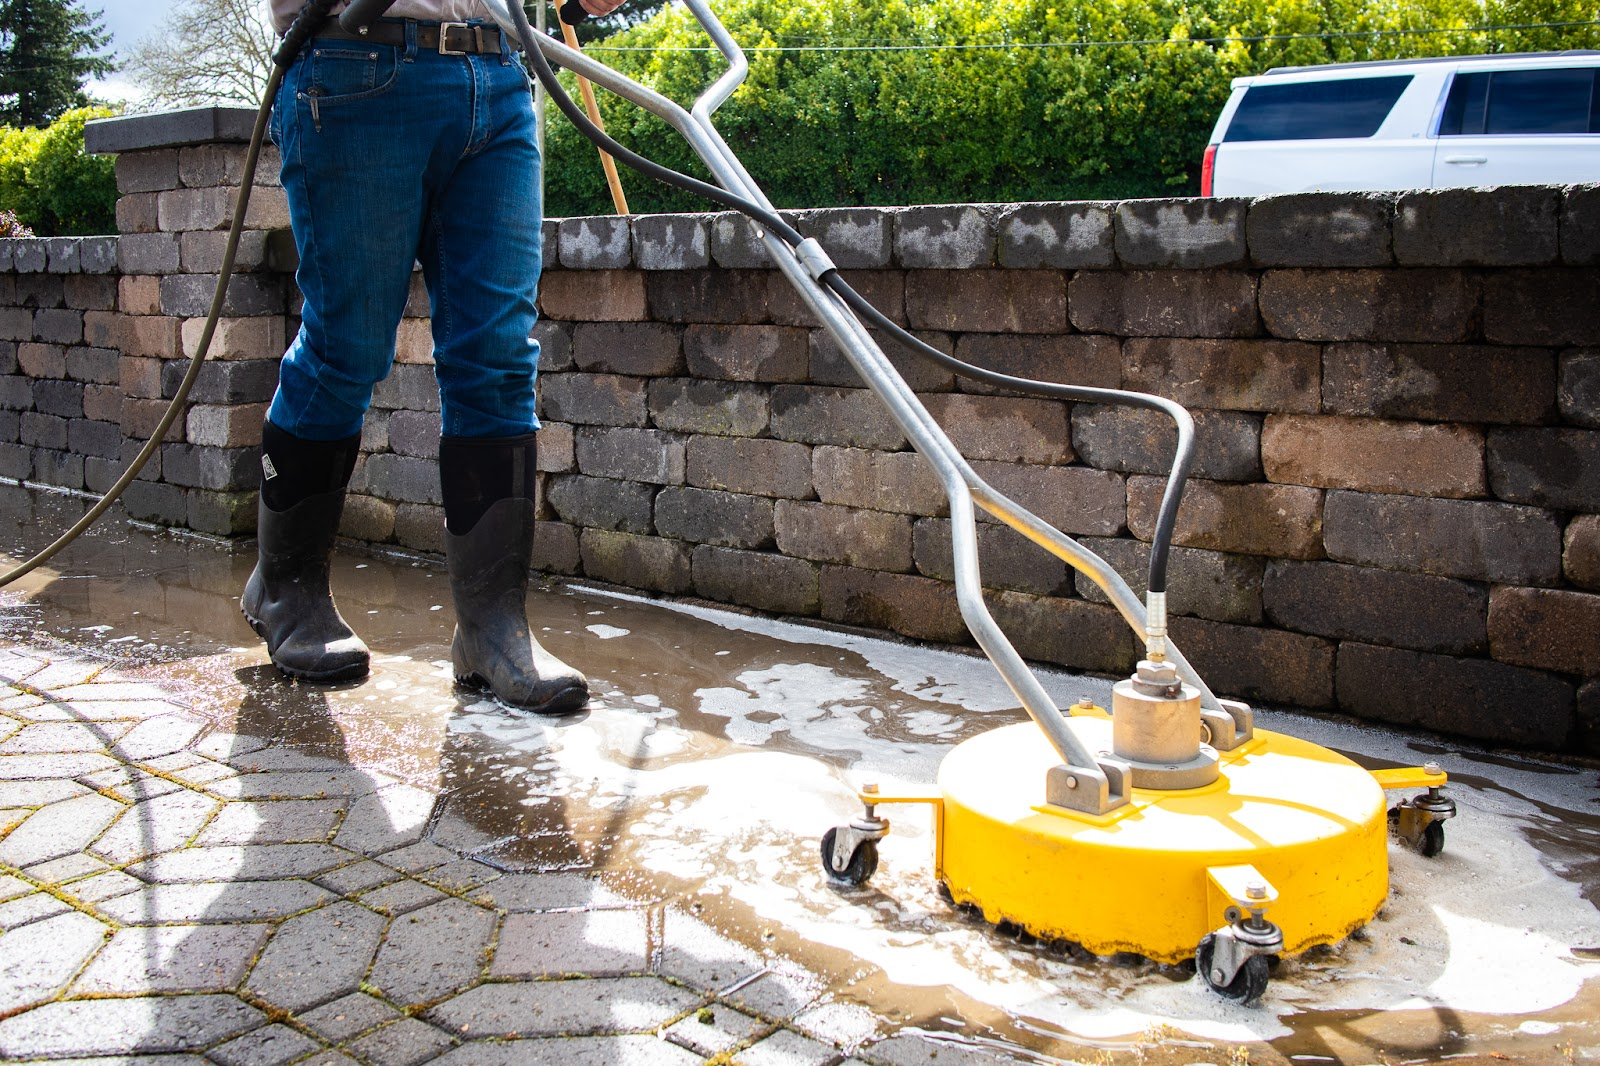 Surface cleaner washing paving stones of dirt and moss